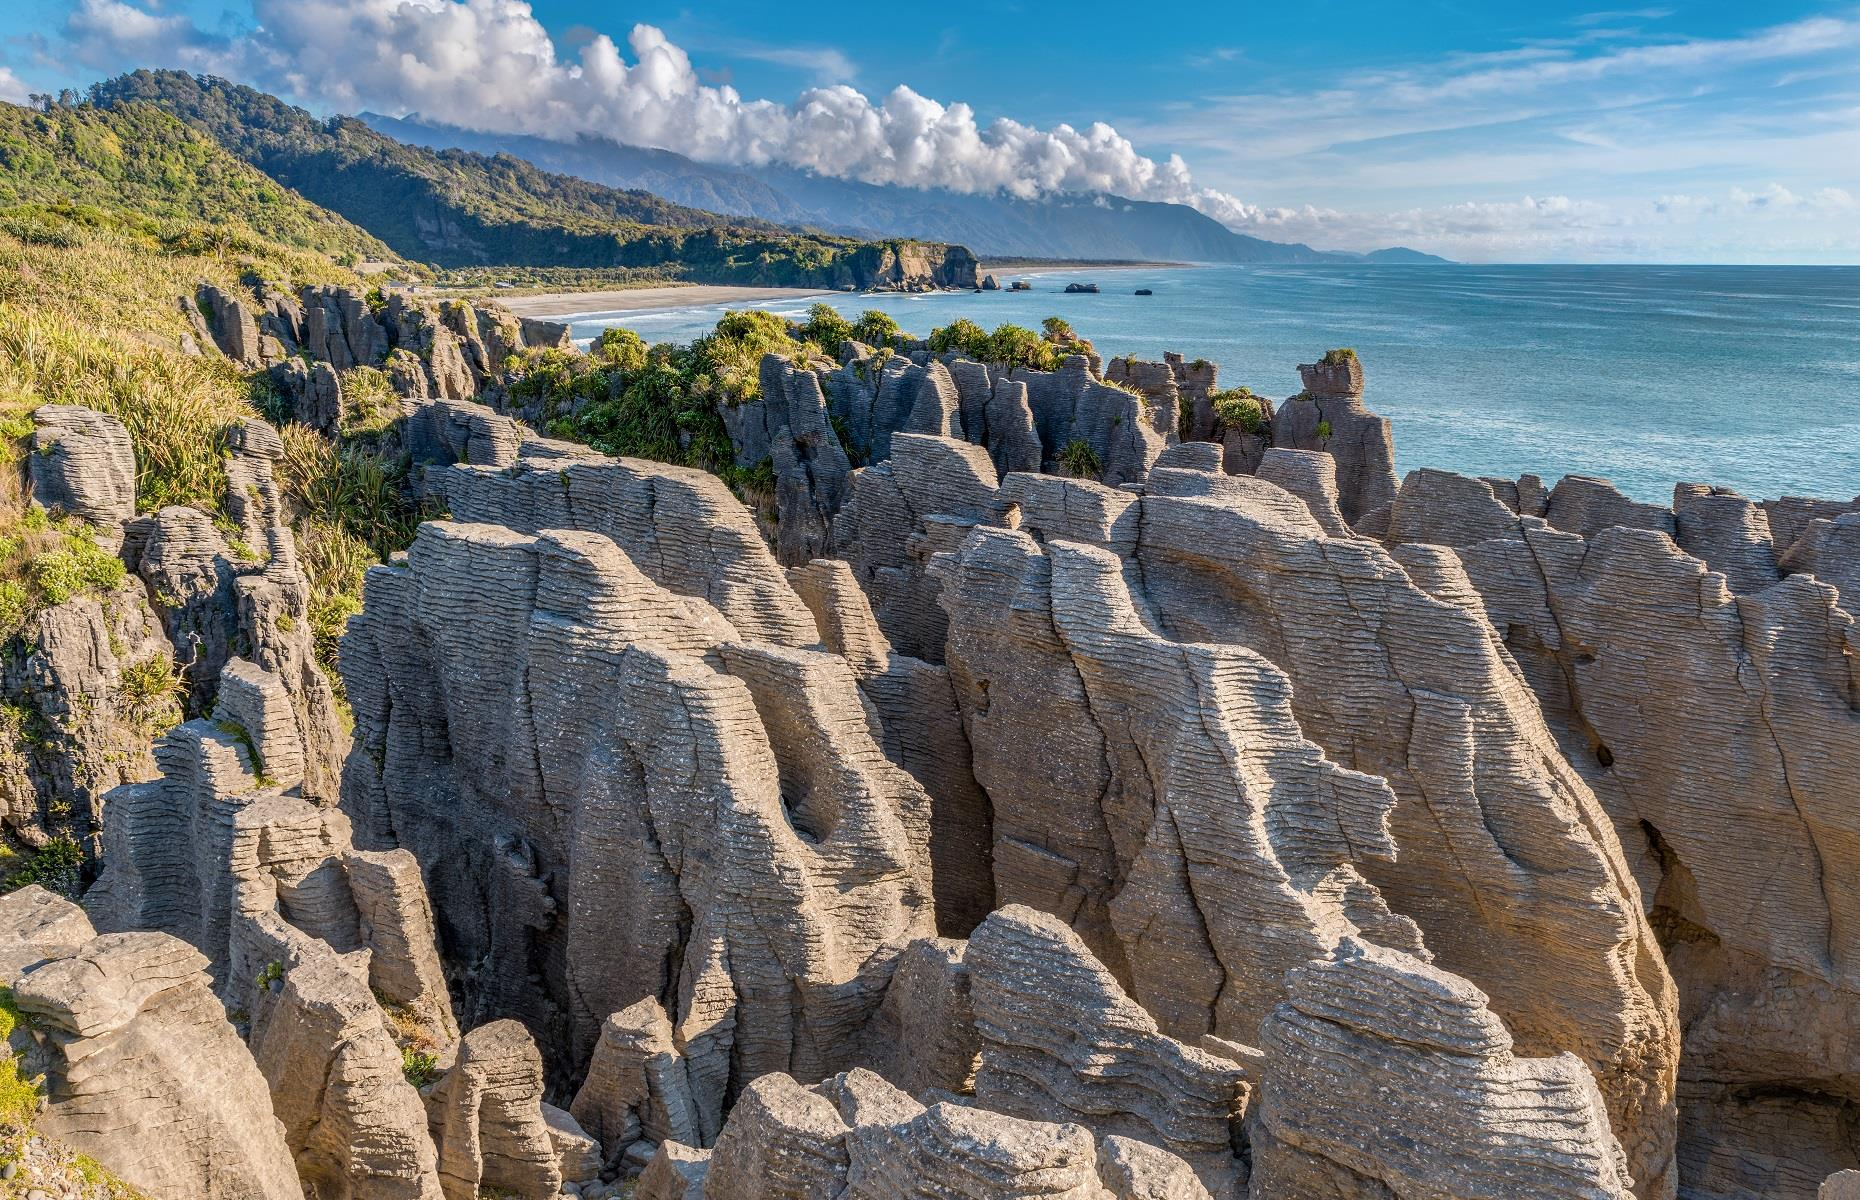 Slide 41 of 59: Situated inside Paparoa National Park on the west coast of New Zealand's South Island, the Punakaki Pancake Rocks are in a class of their own. These bulging limestone pillars were created 30 million years ago when dead marine creatures landed on the seabed. Immense water pressure solidified their fragments and earthquake activity slowly pushed the newly formed pillars upwards. Wind and seawater finally sculpted the rocks into the pancake-like structures we see today.